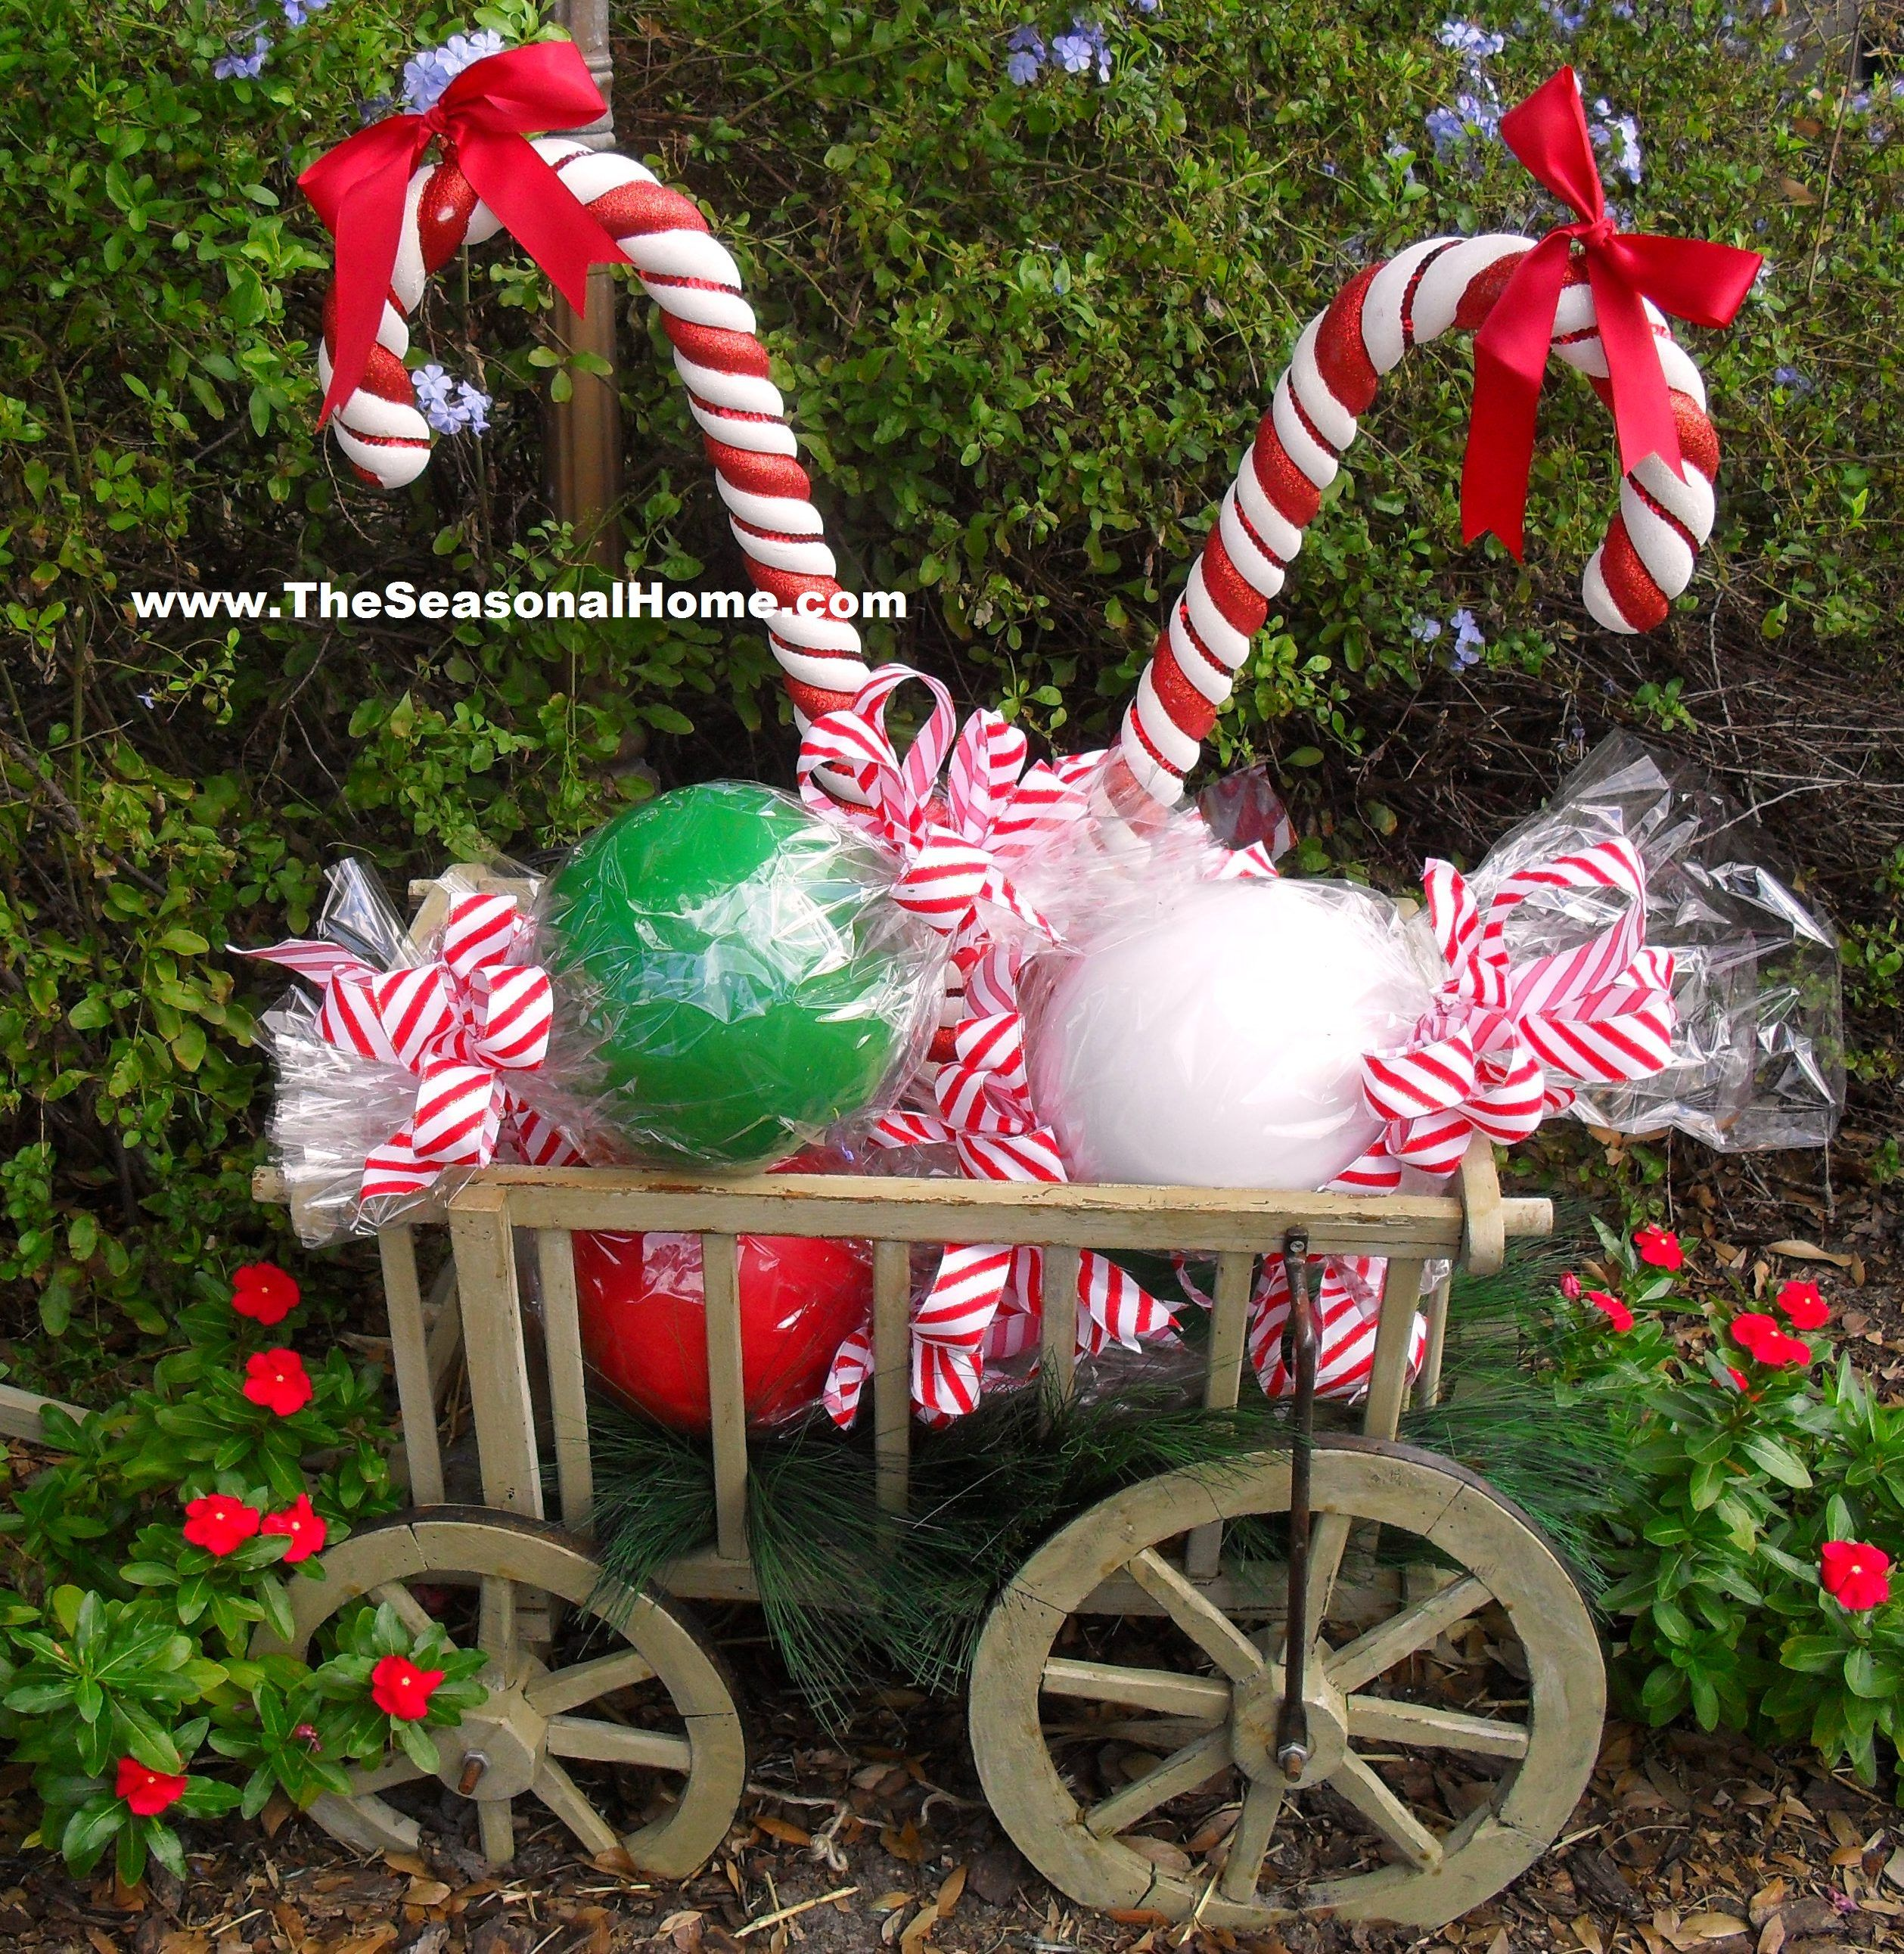 How to diy outdoor candy on the seasonal home blog for Outside xmas decorations